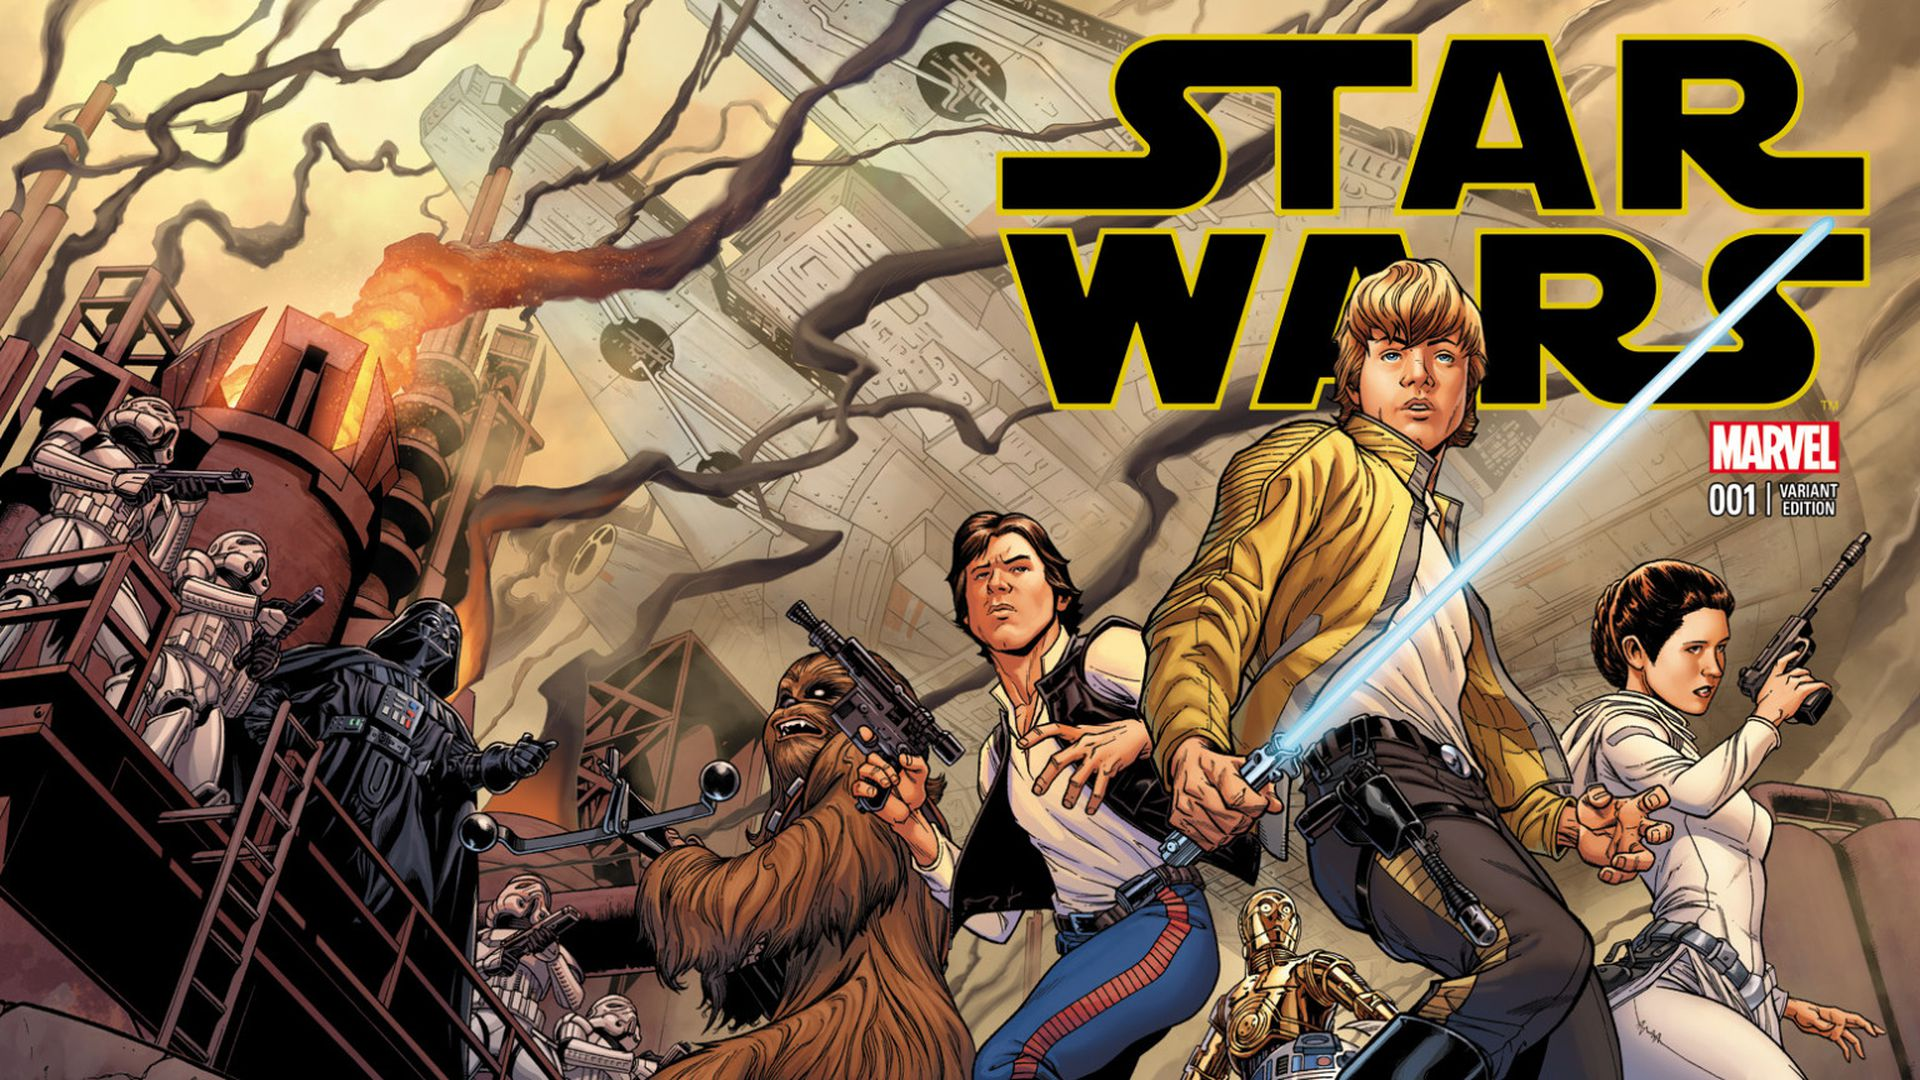 Want more Star Wars? Here's what to read | Polygon